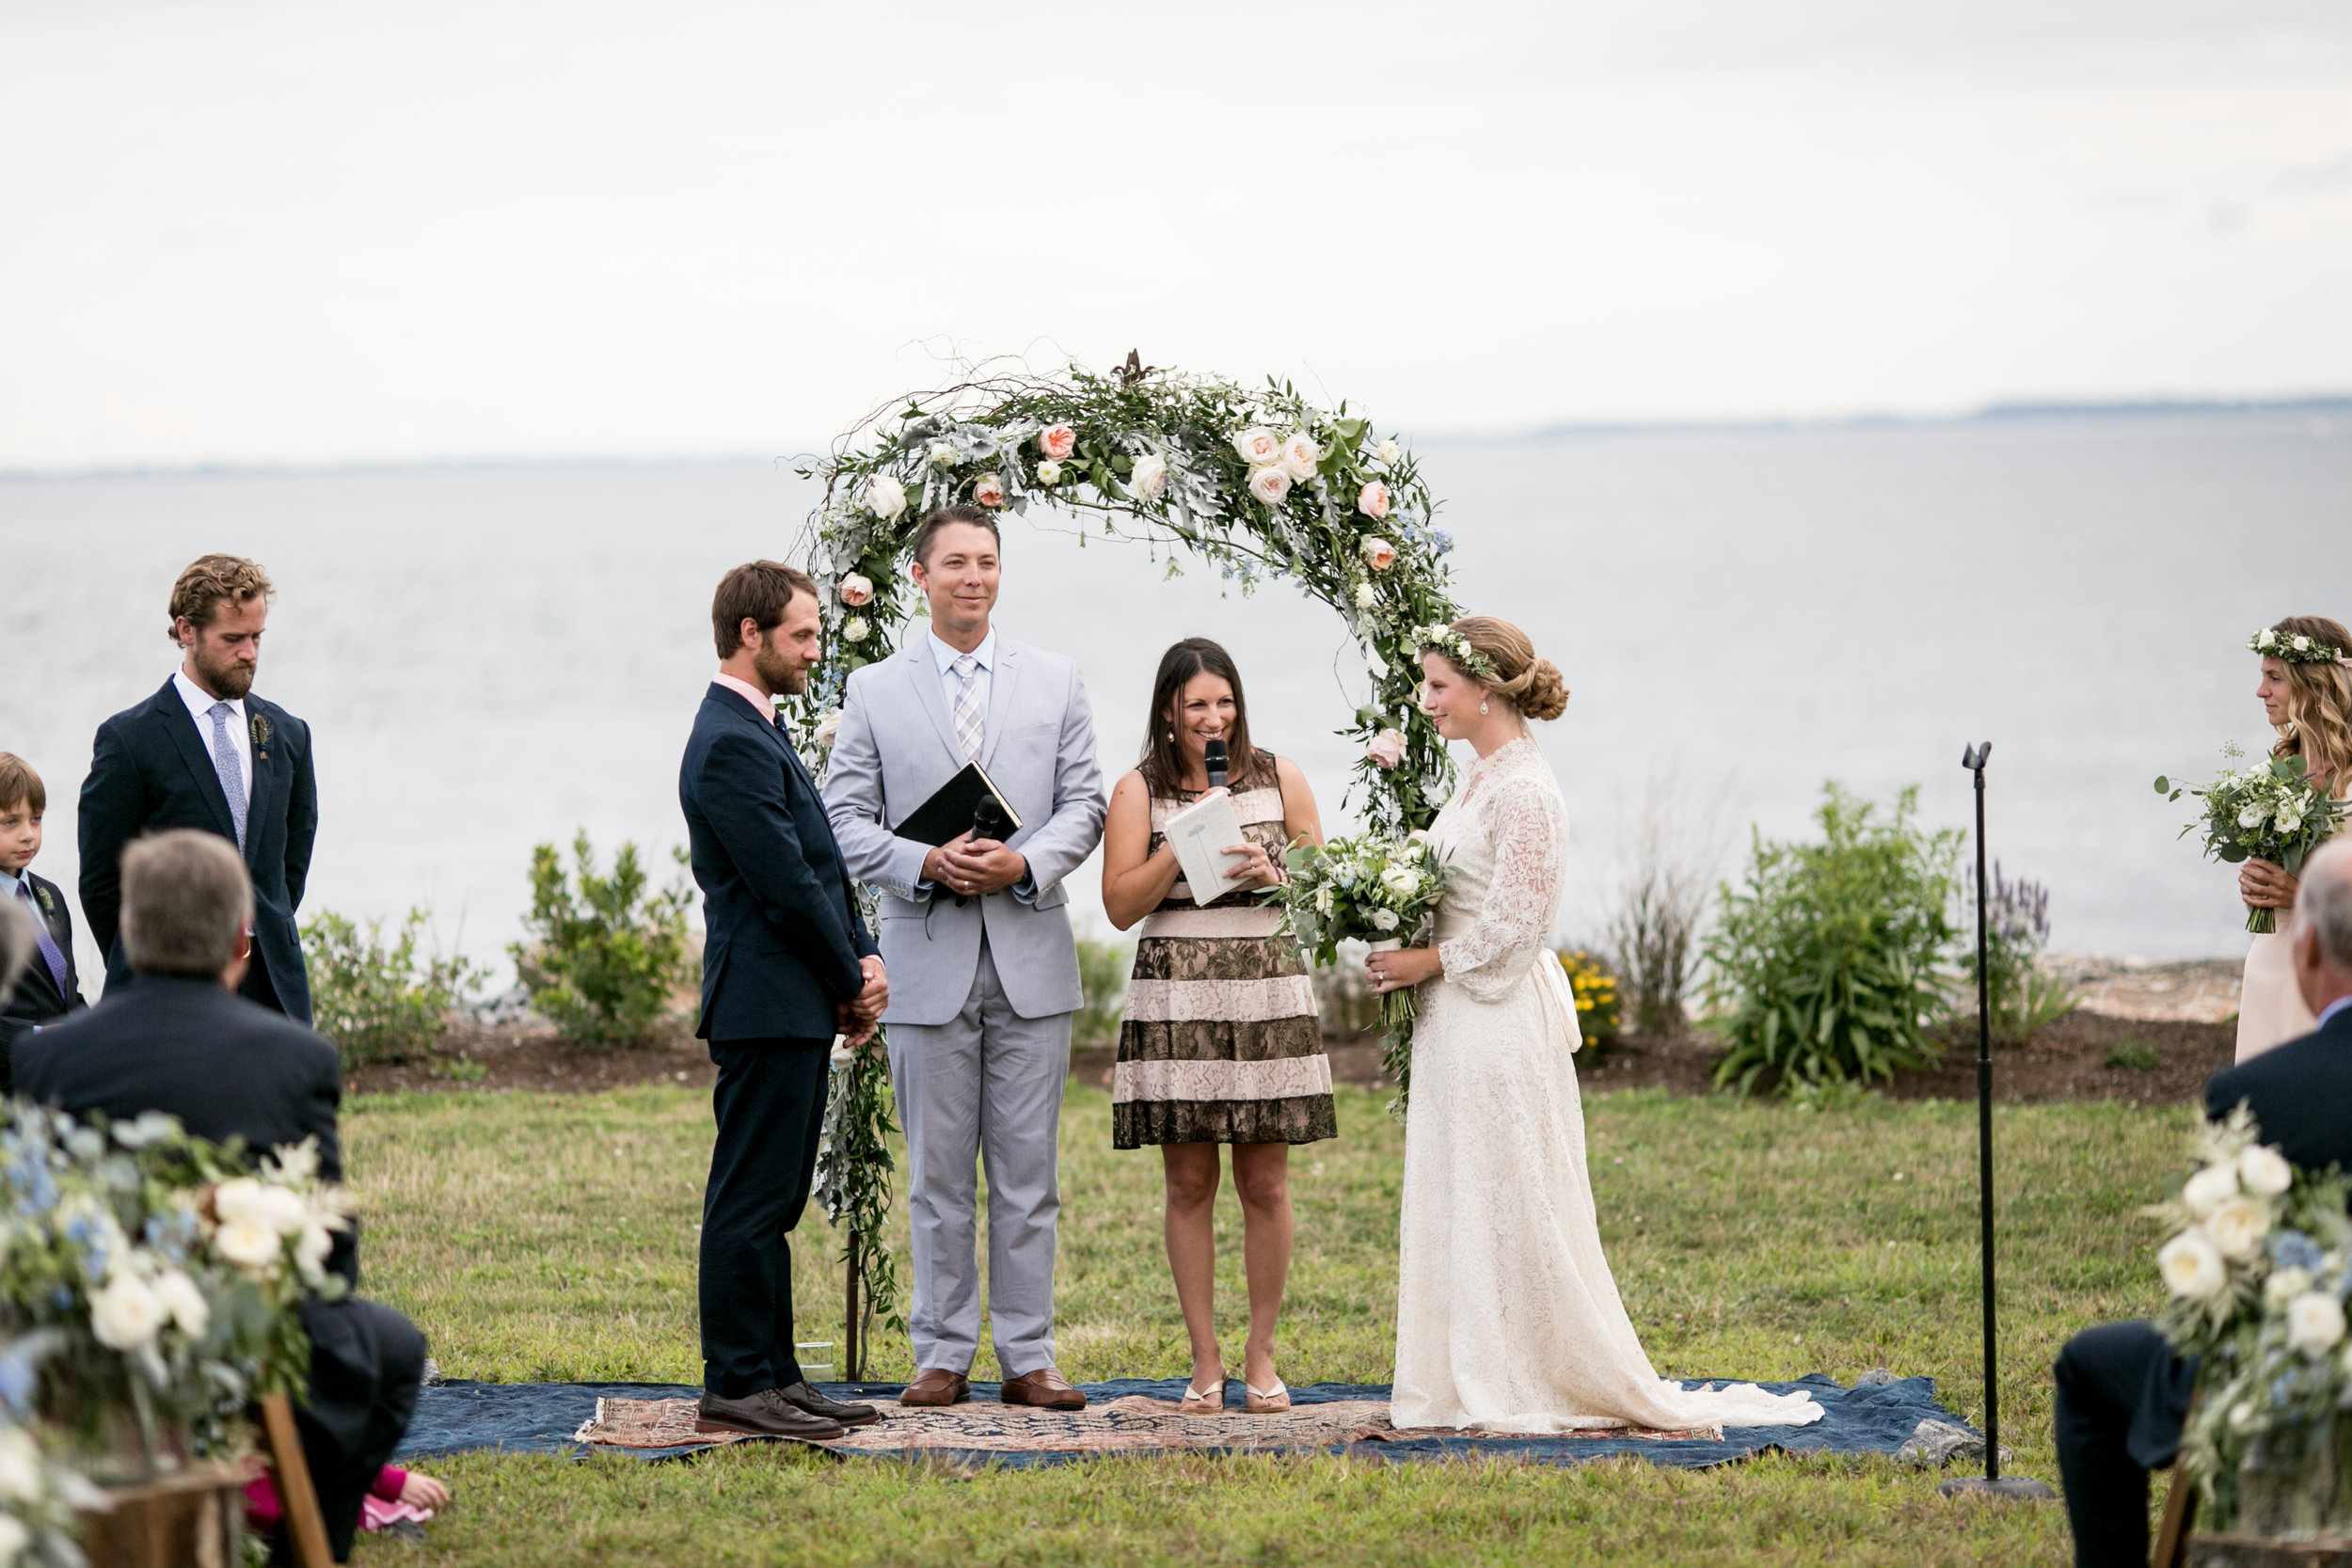 Hana Floral Design with Ashley Douglass Events. CT Shoreline Wedding in Old Lyme, CT.